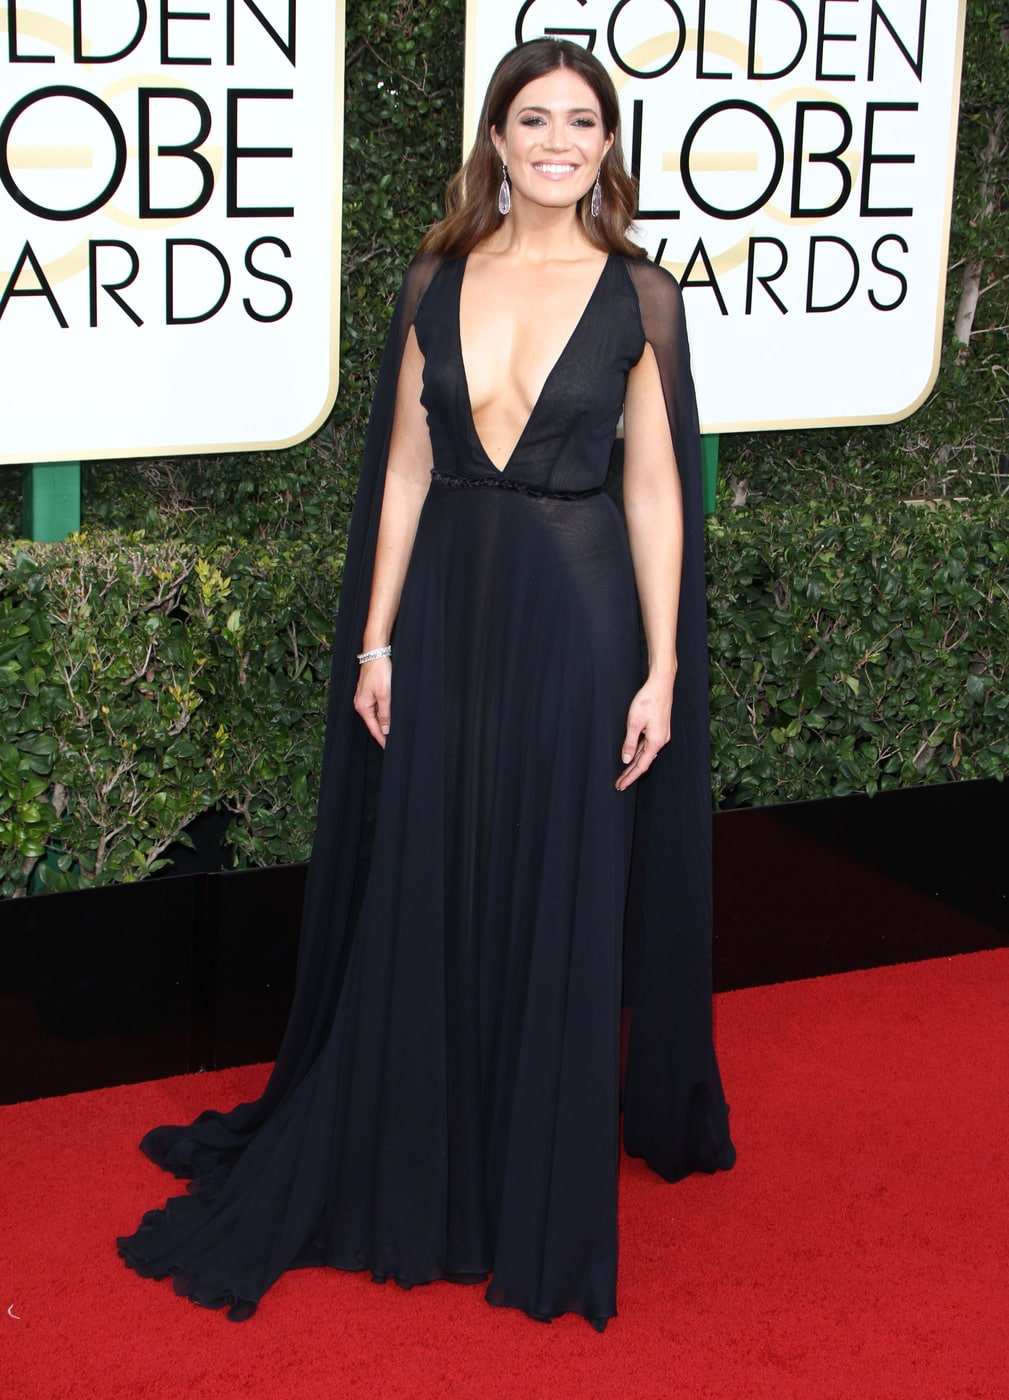 Mandy Moore in a black plunging Naeem Khan gown on the 2017 Golden Globes red carpet